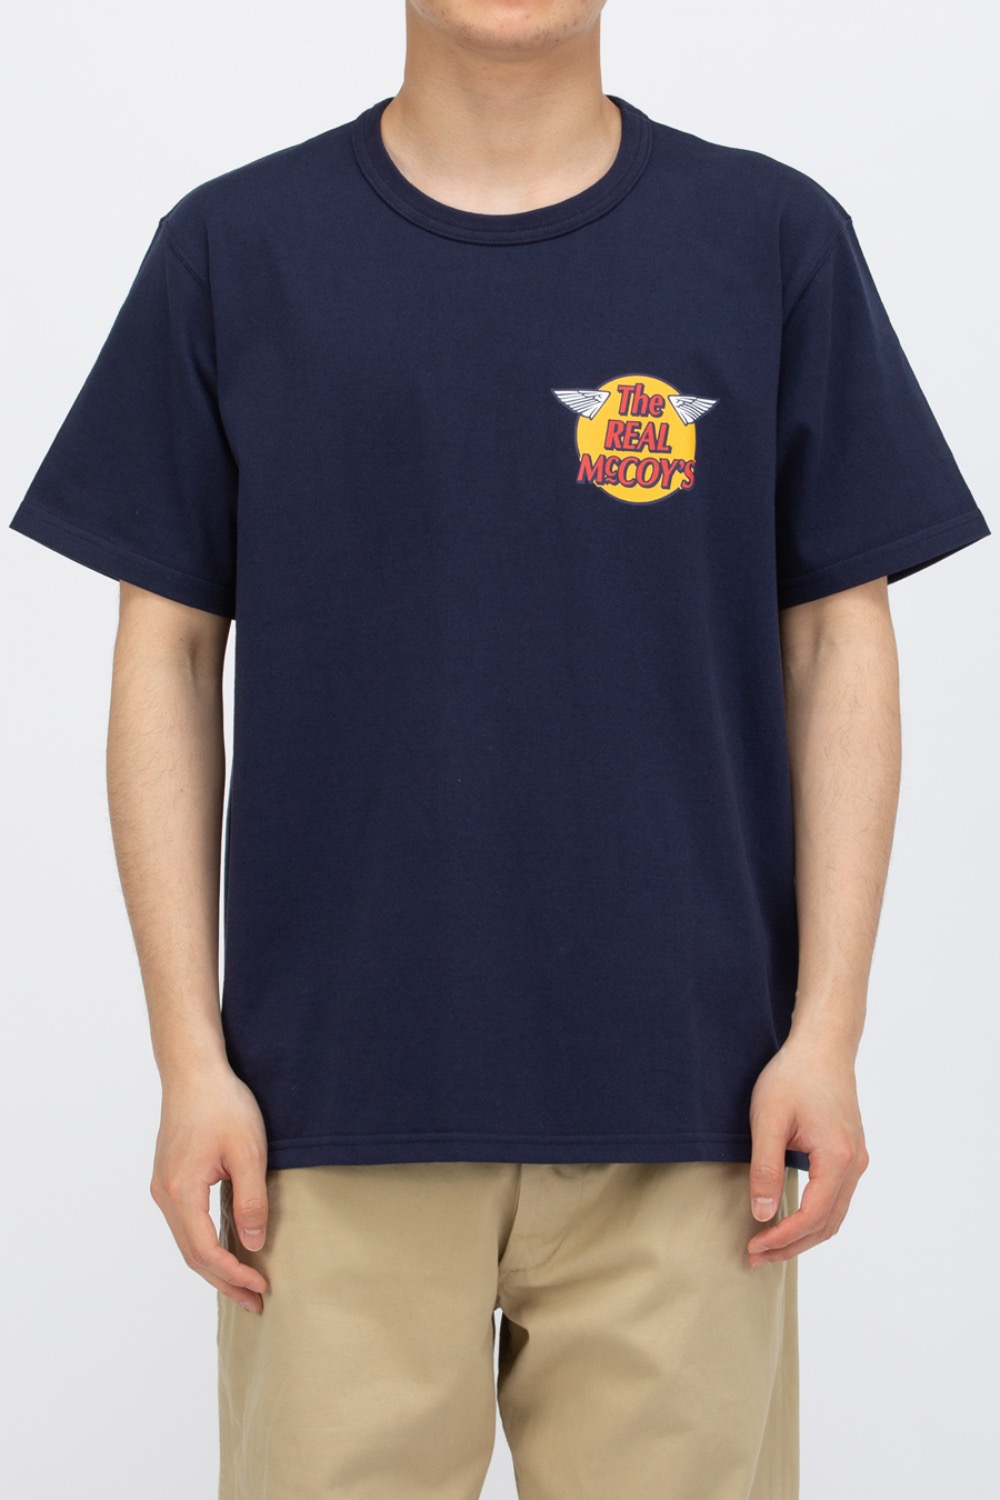 THE REAL MCCOY'S LOGO TEE S/S NAVY